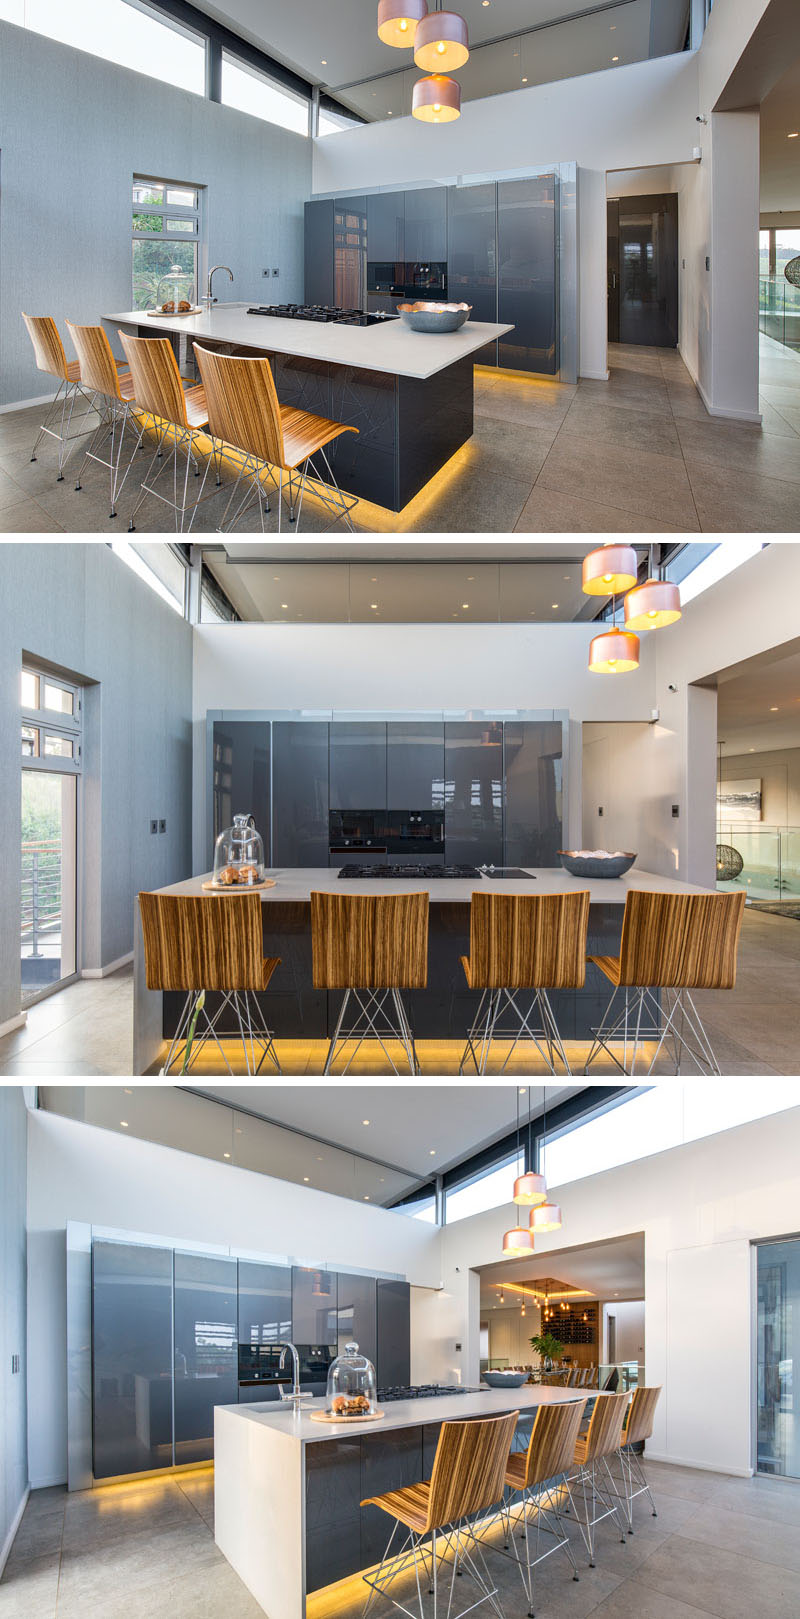 This modern kitchen has hidden lighting below the grey island and wall of cabinets make it appear as if they are floating. The glossy finish on the surfaces reflect the light making the room feel bright and open.